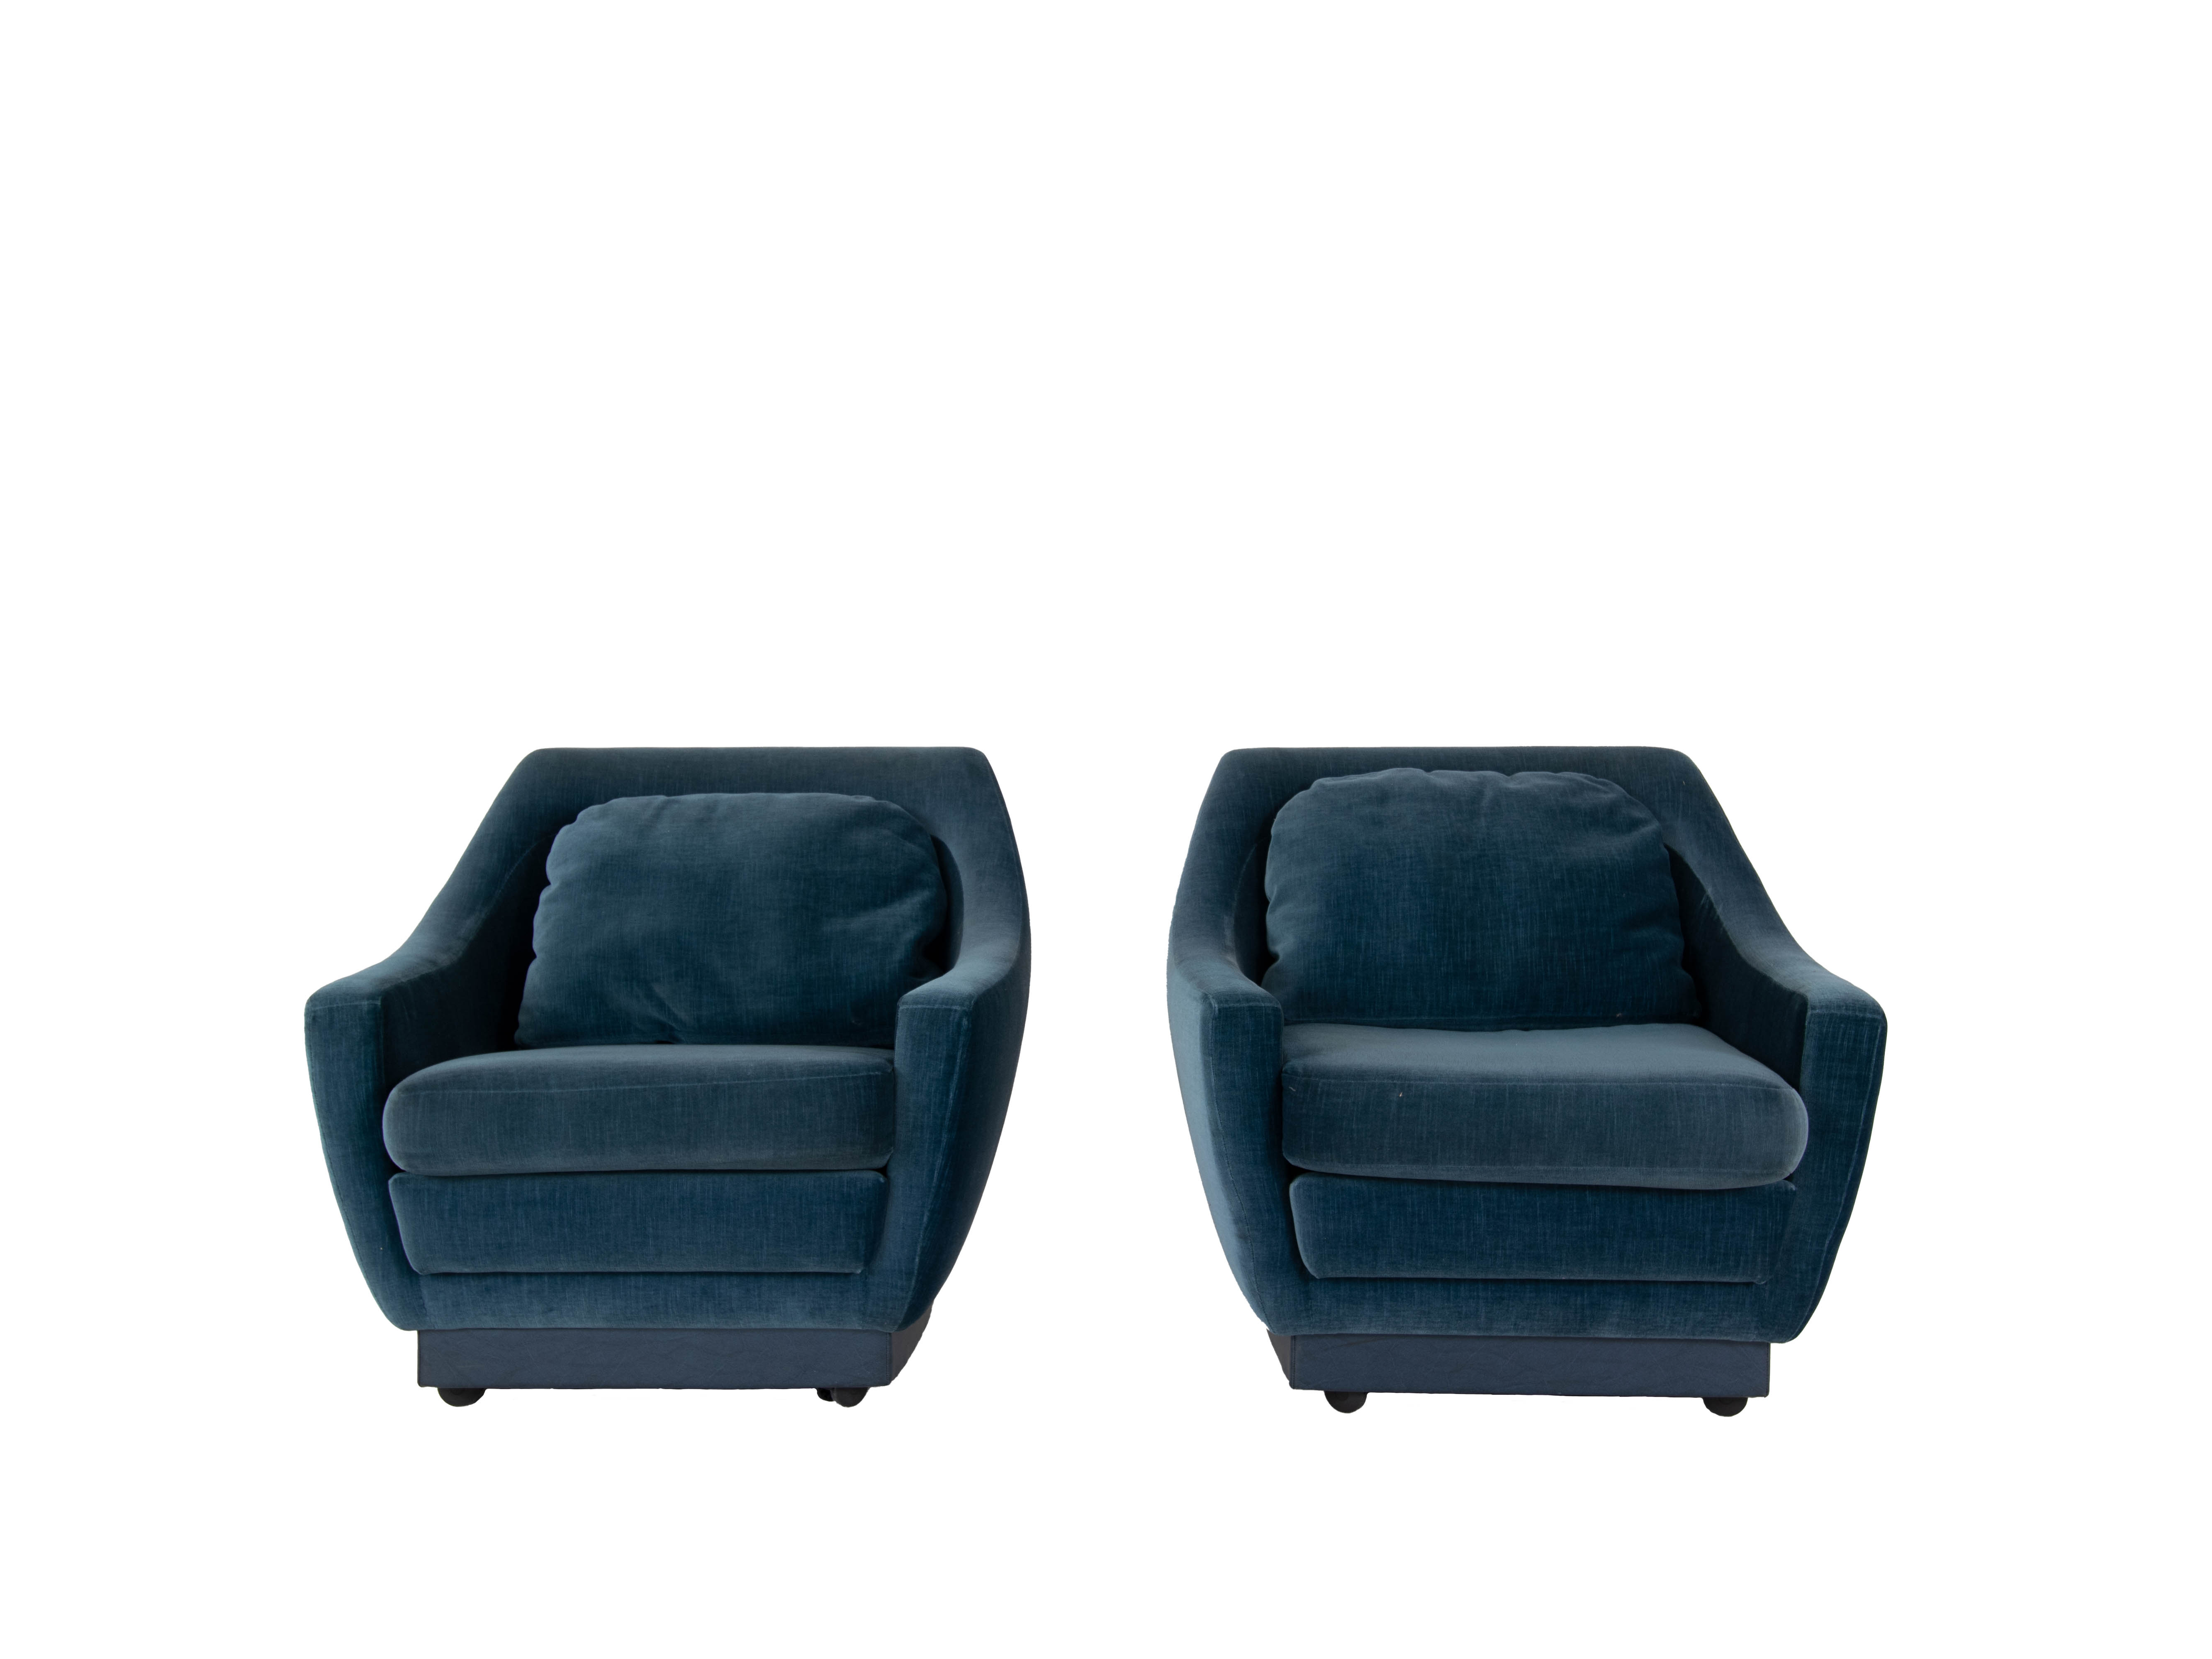 Set of Art Deco Style Lounge Chairs in Blue Velvet, The Netherlands